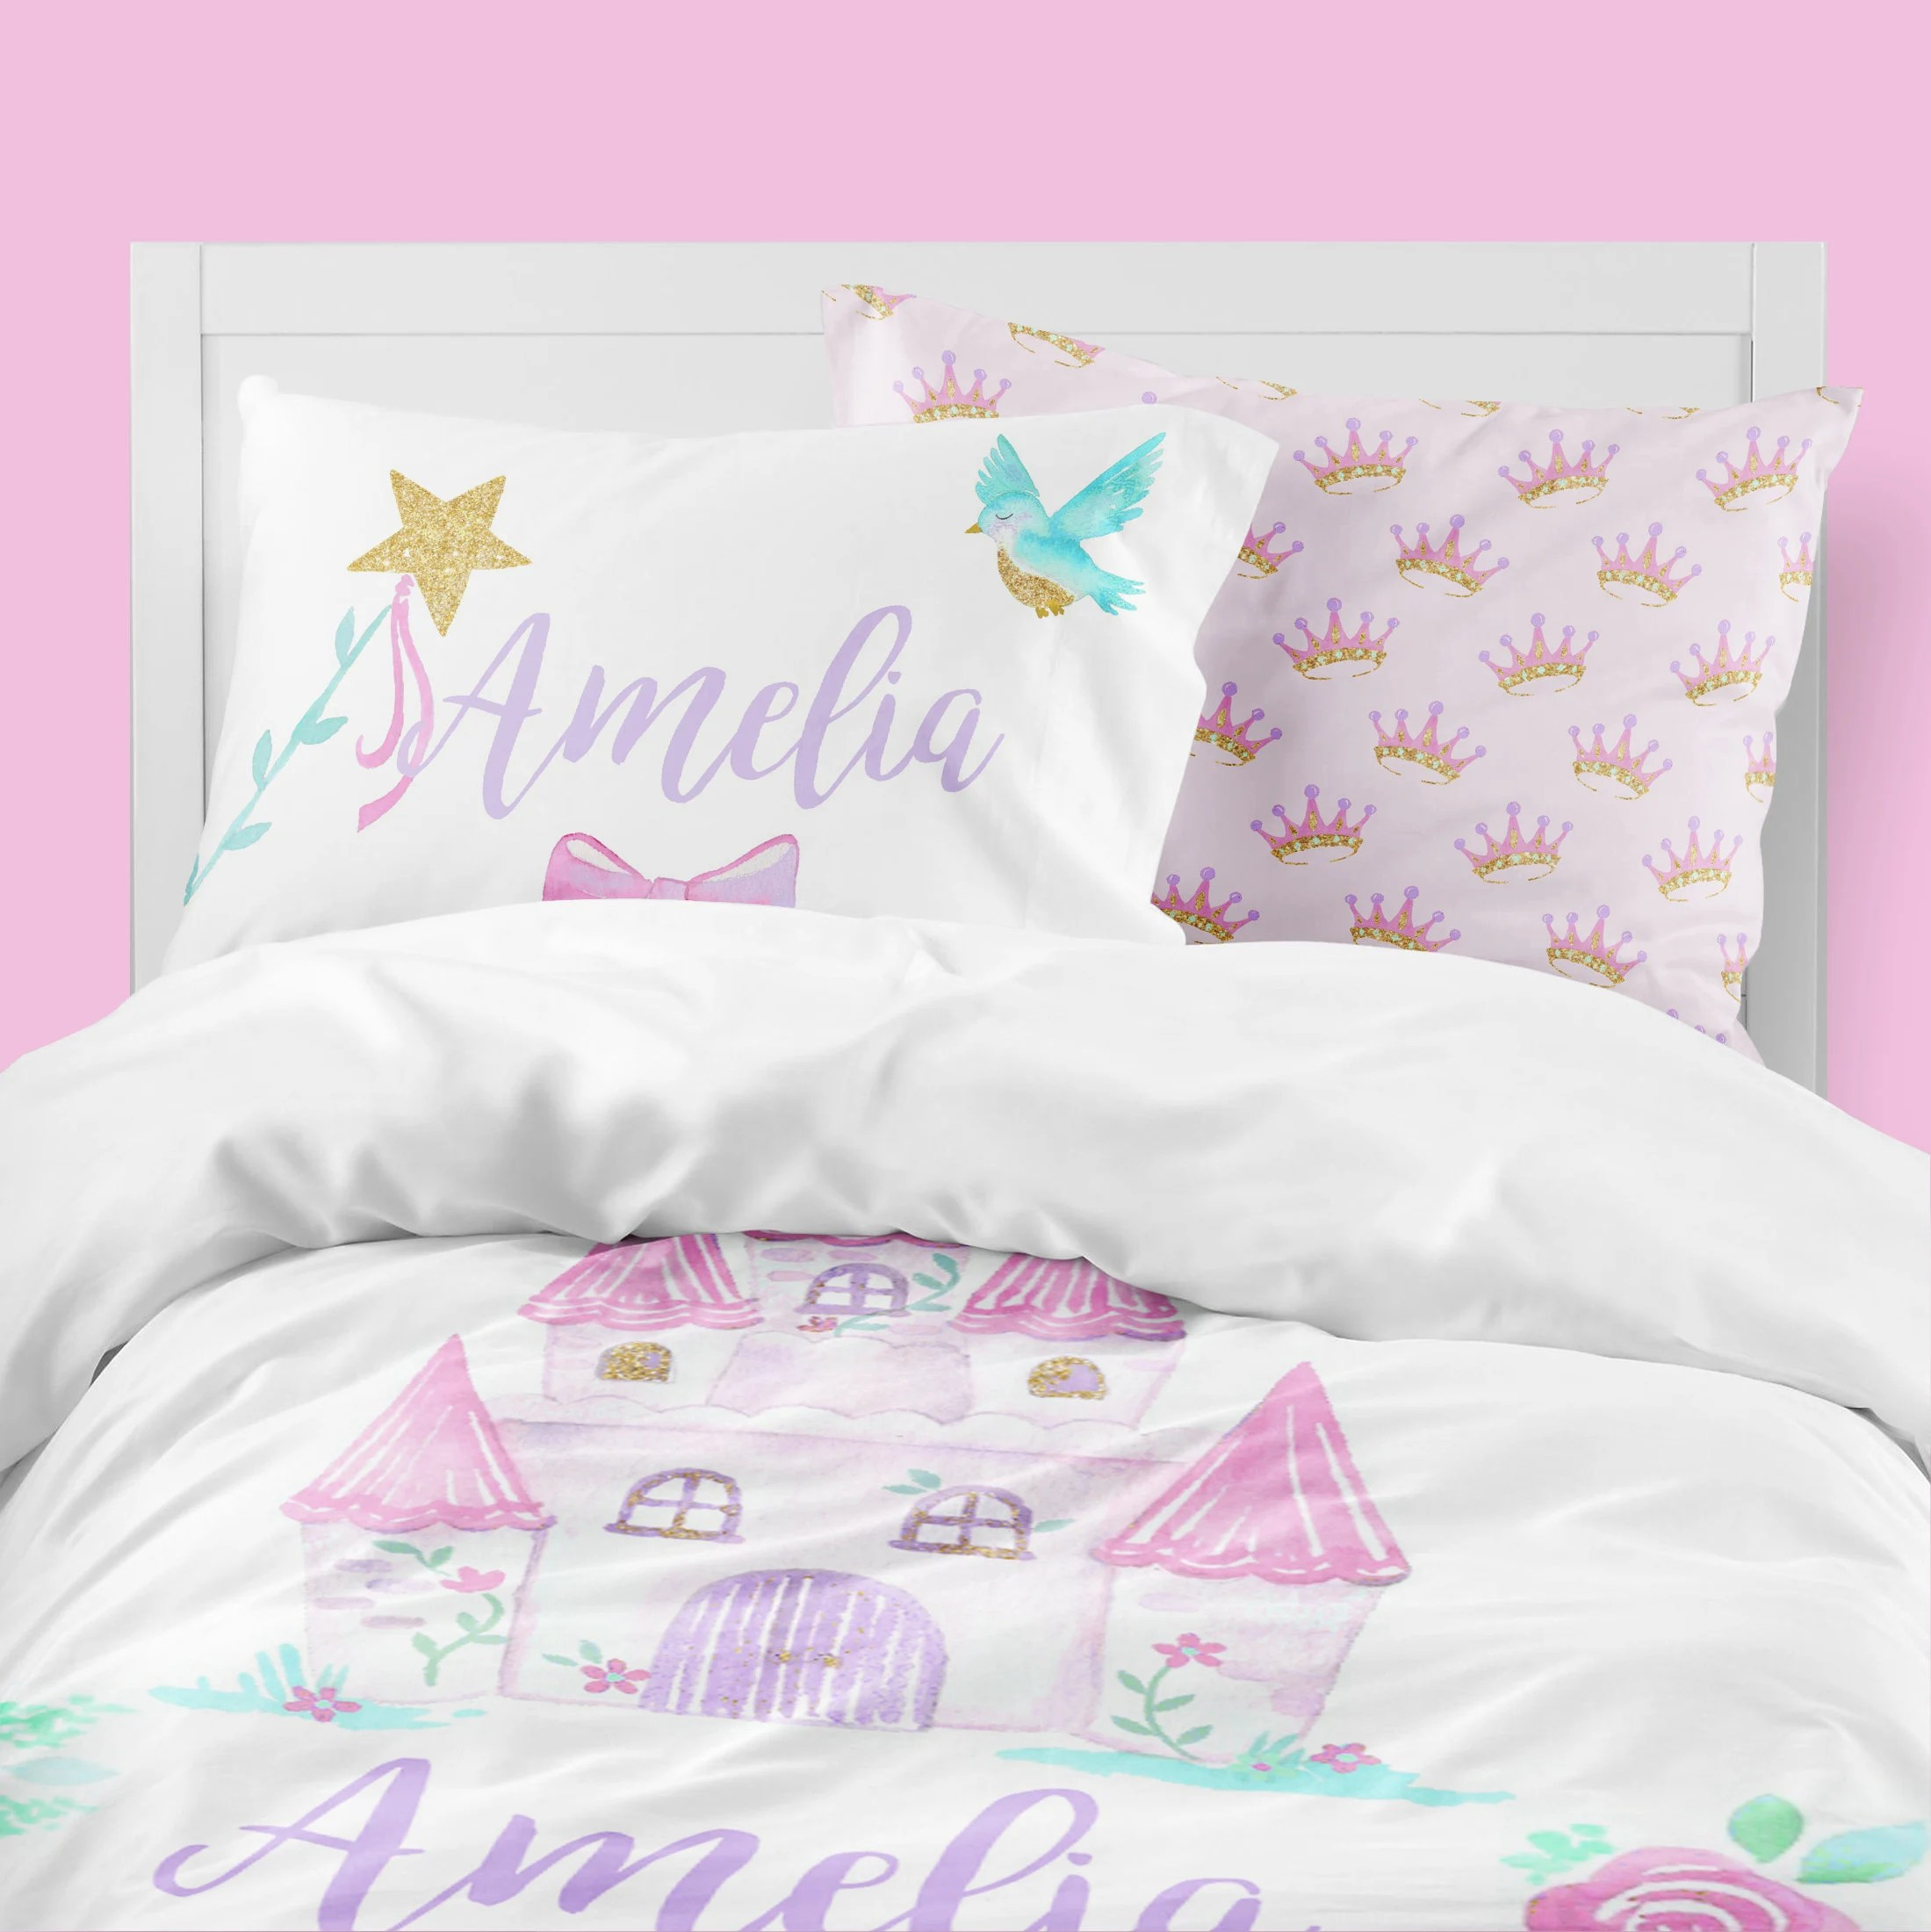 princess girls room fairy tale toddler bedding set twin comforter castle queen duvet cover personalized pillowcase ever after